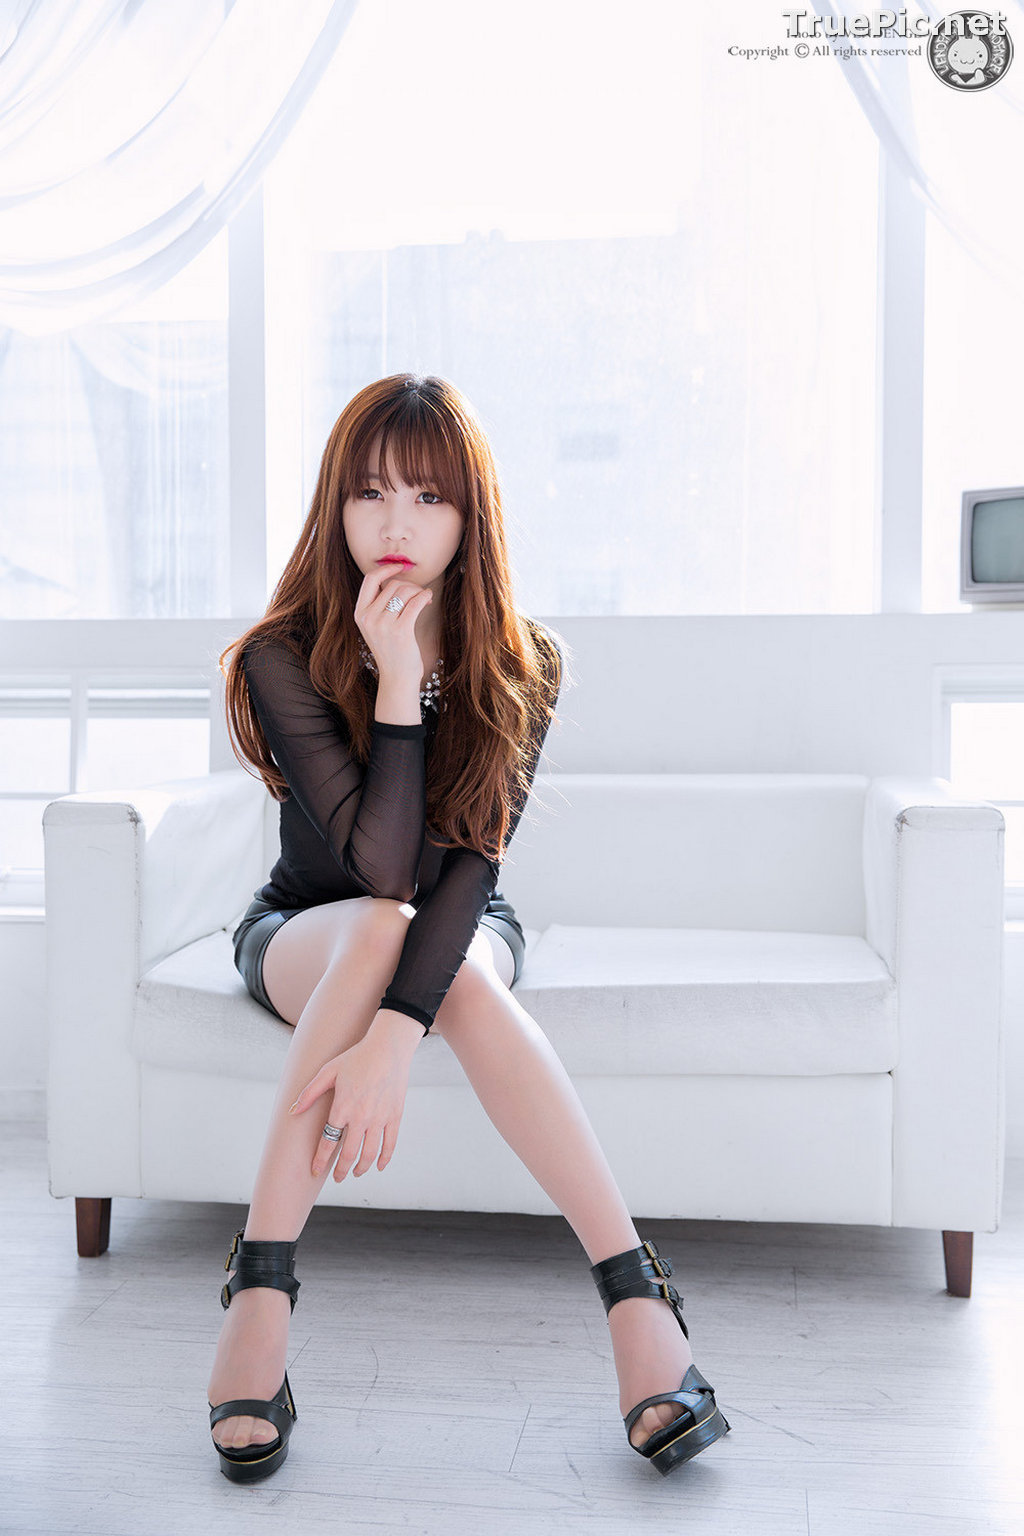 Image Korean Model - Hong Ji Yeon - Cute and Sexy In Studio - TruePic.net - Picture-5